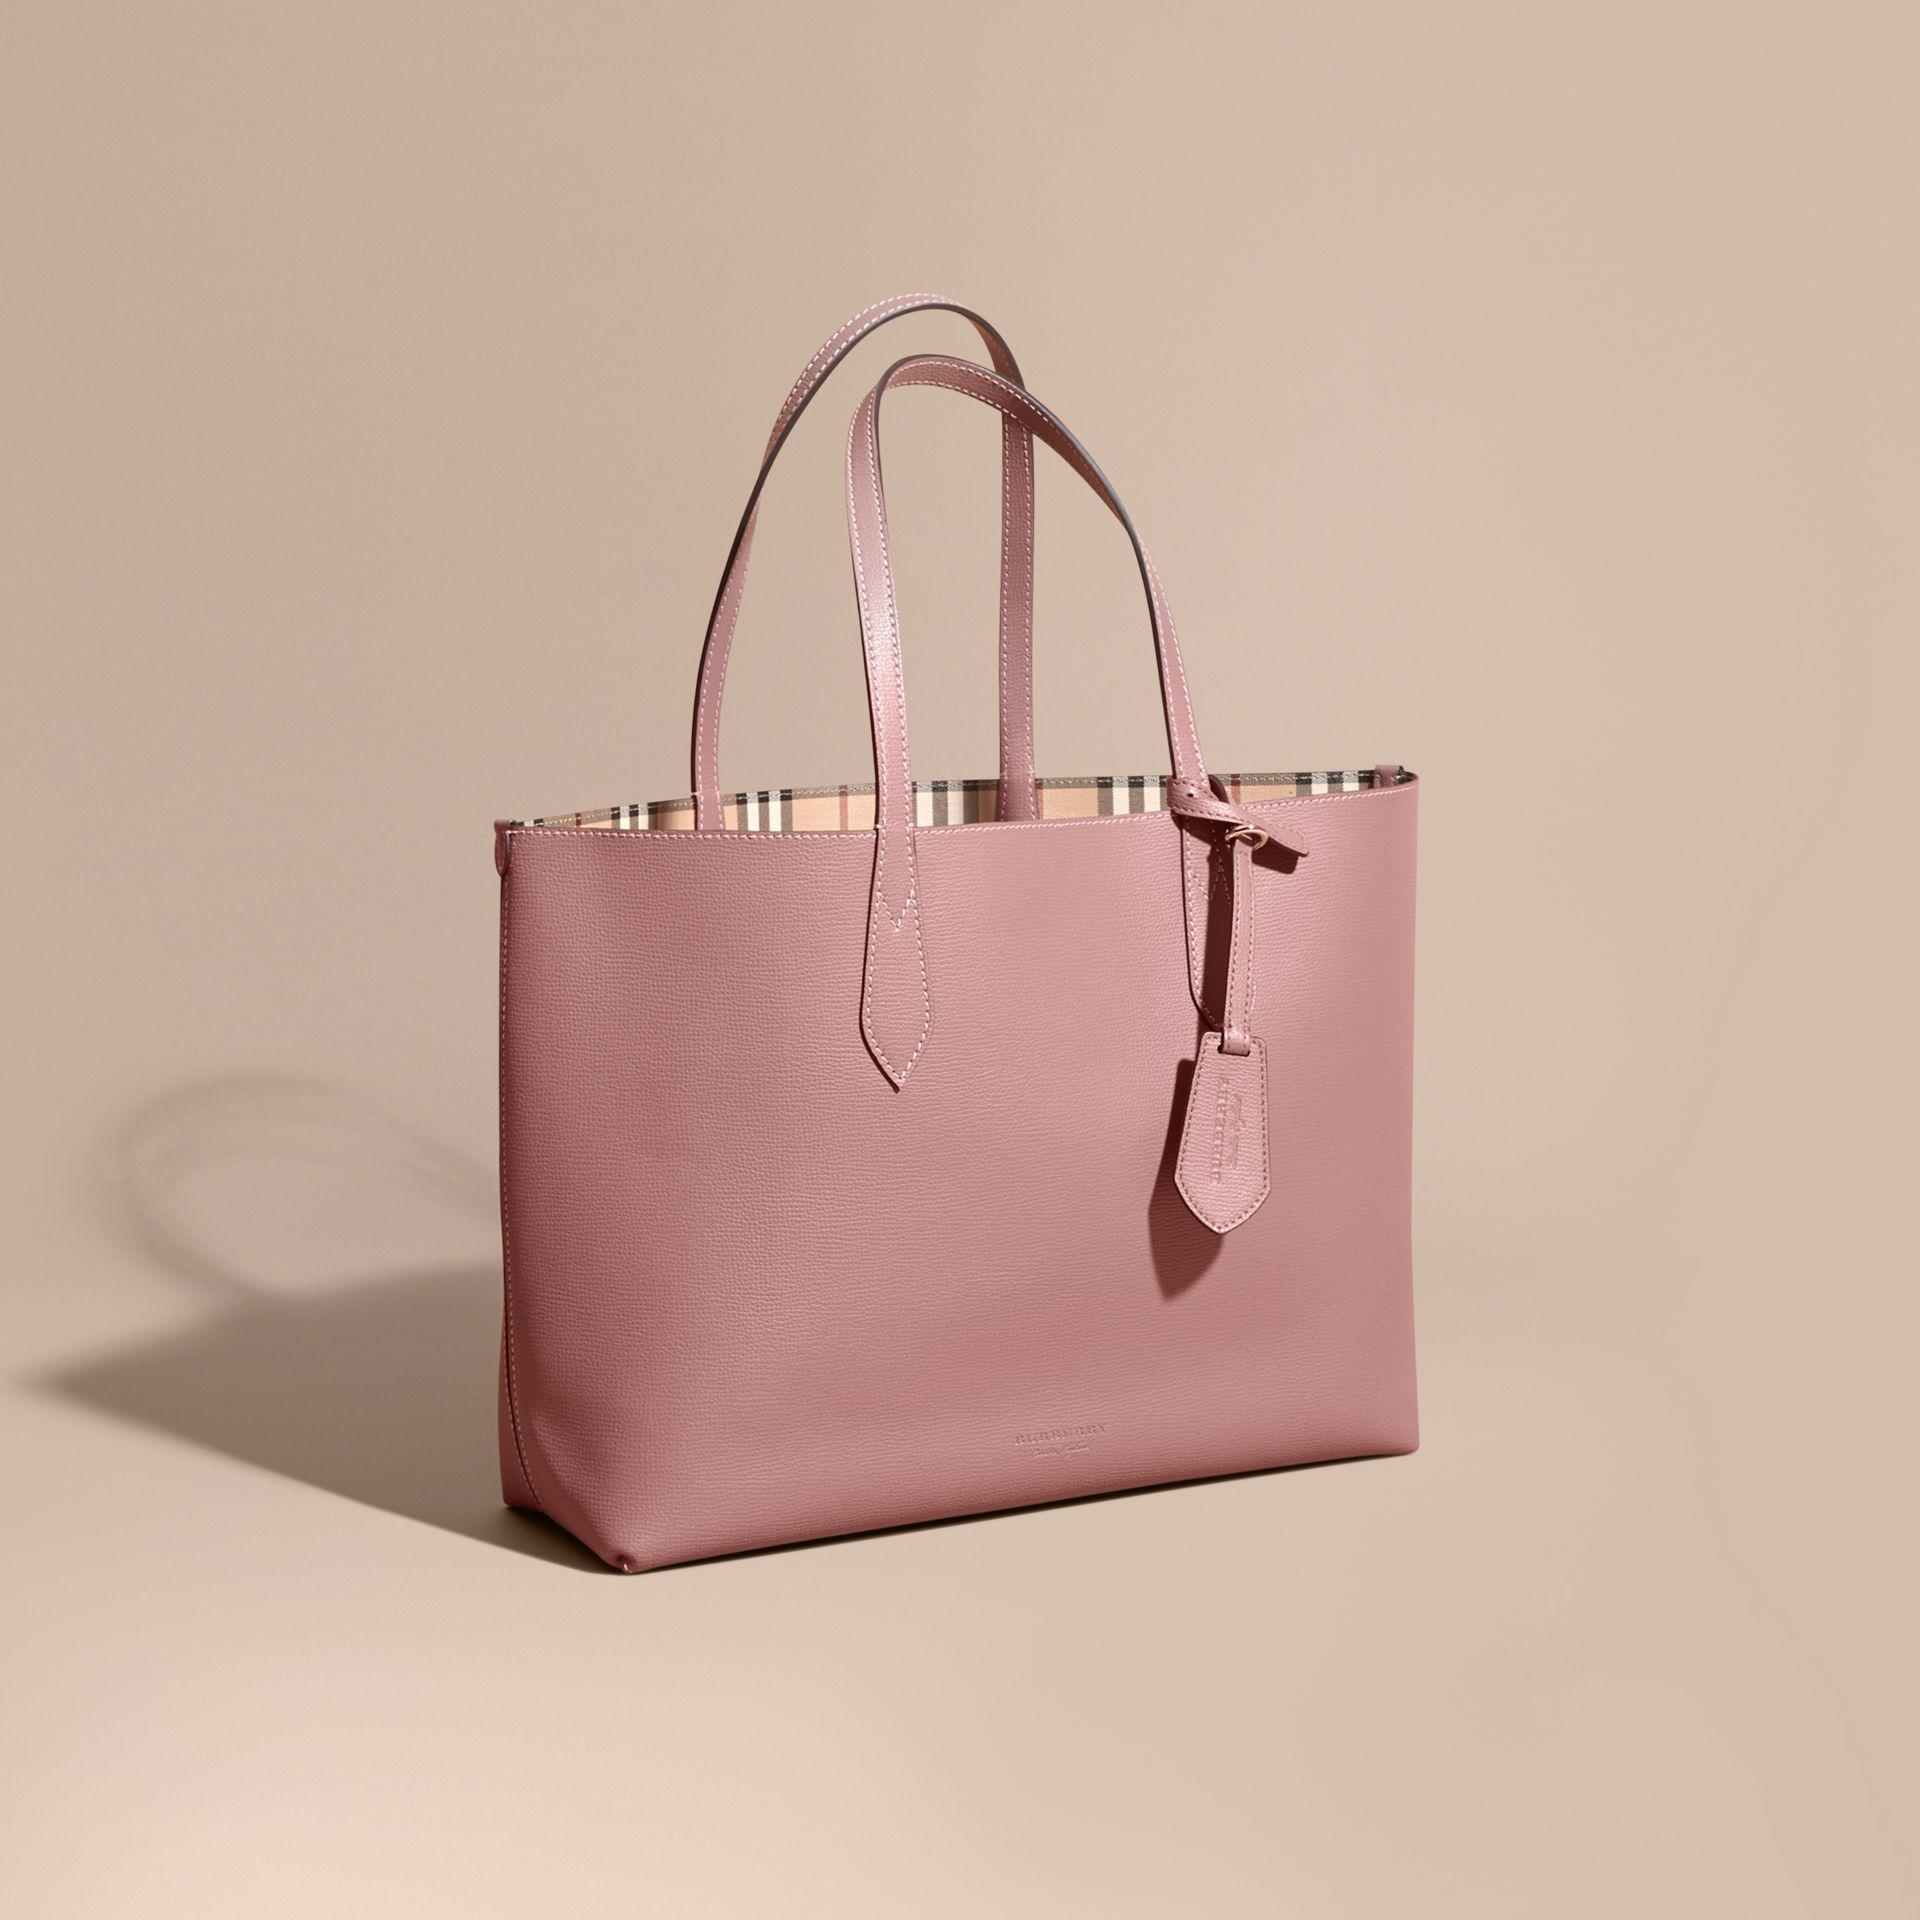 d367e0798f91 ... Item No 4033954. Burberry Small Canter Horseferry Check Tote Ash Rose  Dusty Pink. Pink Burberry Purses Best Purse Image Ccdbb